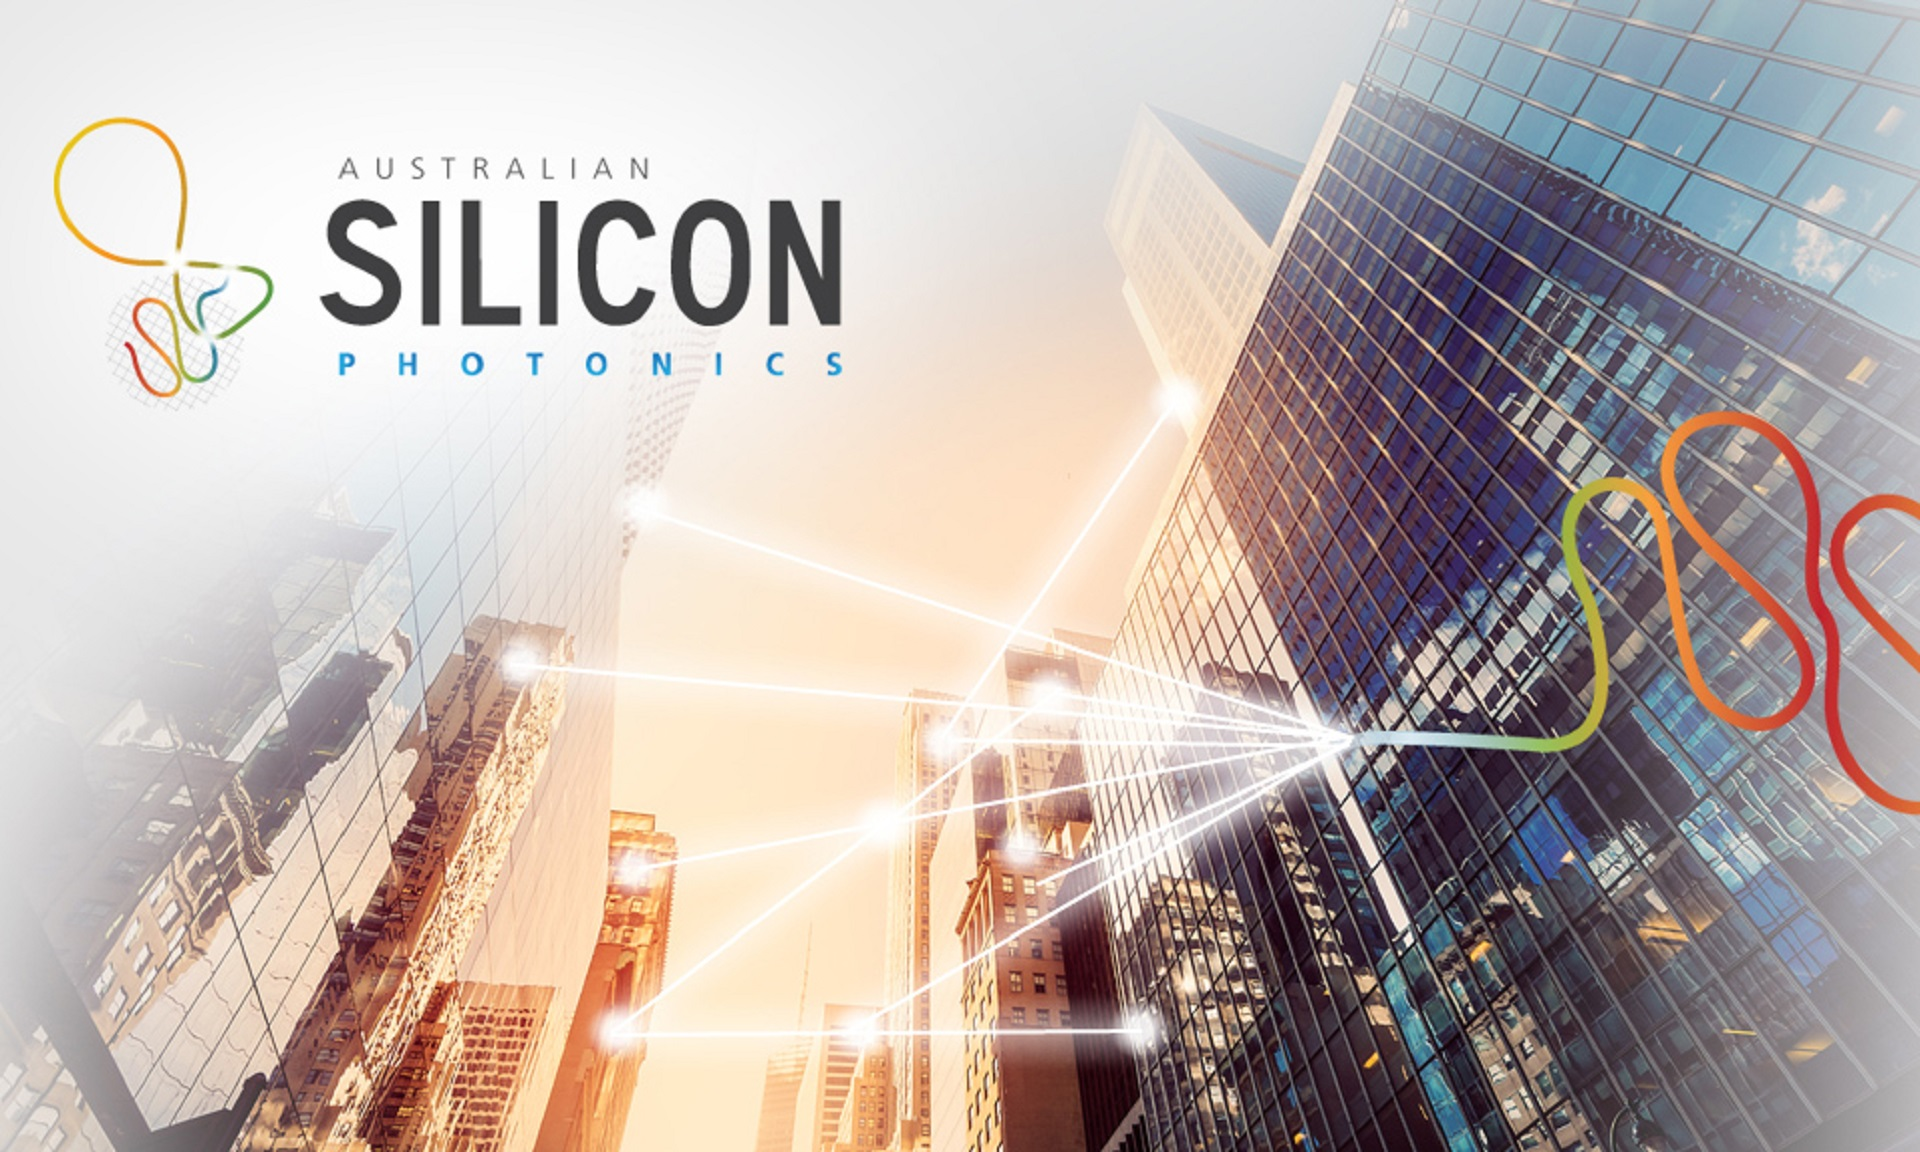 Silicon Photonics is an emerging technology which allows wires connected to silicon chips to be replaced by optical fibres.